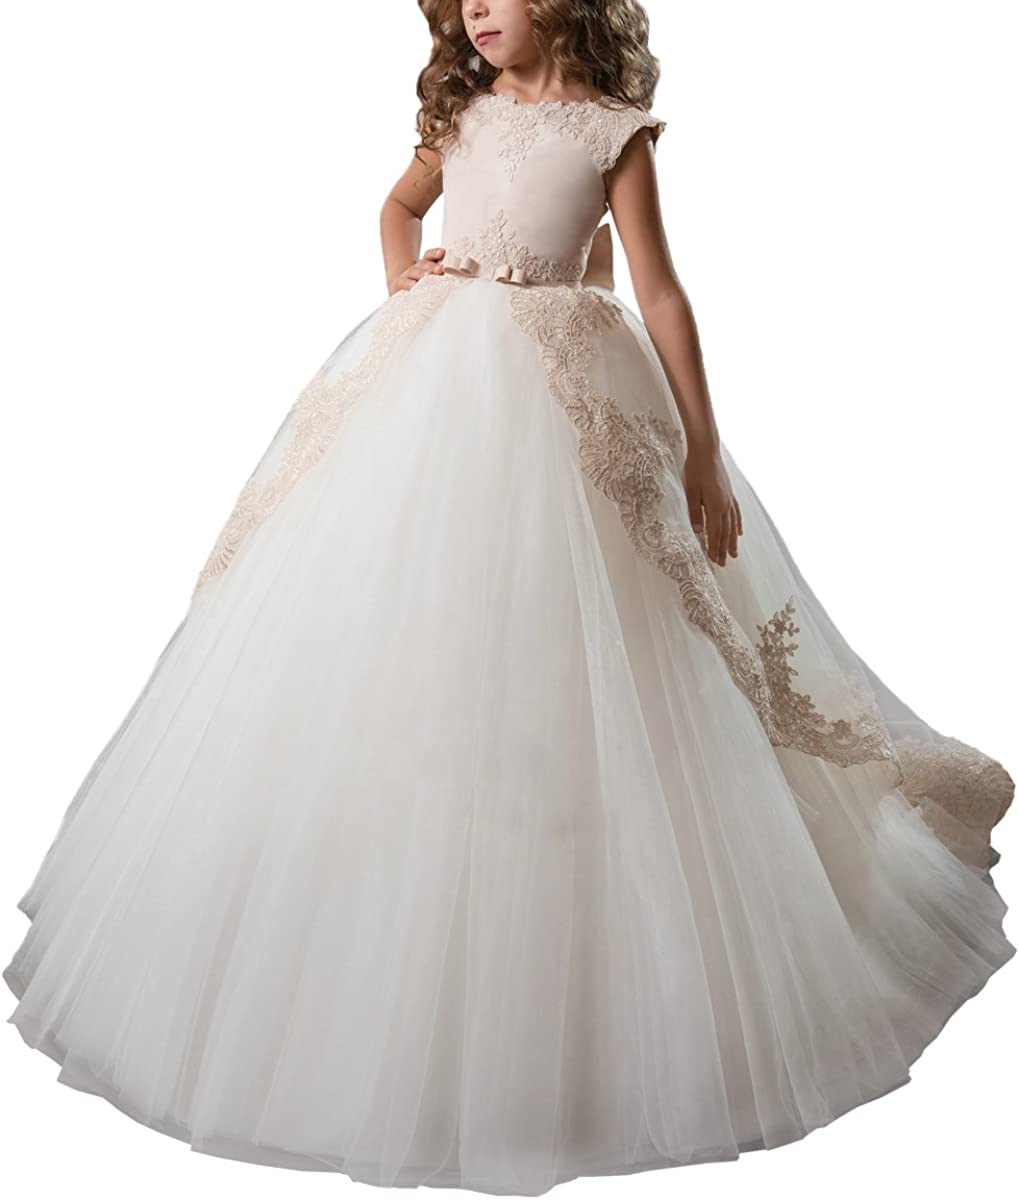 Tulsa Mall ABAO SISTER Fancy Flower Girl Many popular brands Dress Pageant Gown Ball Satin Lace